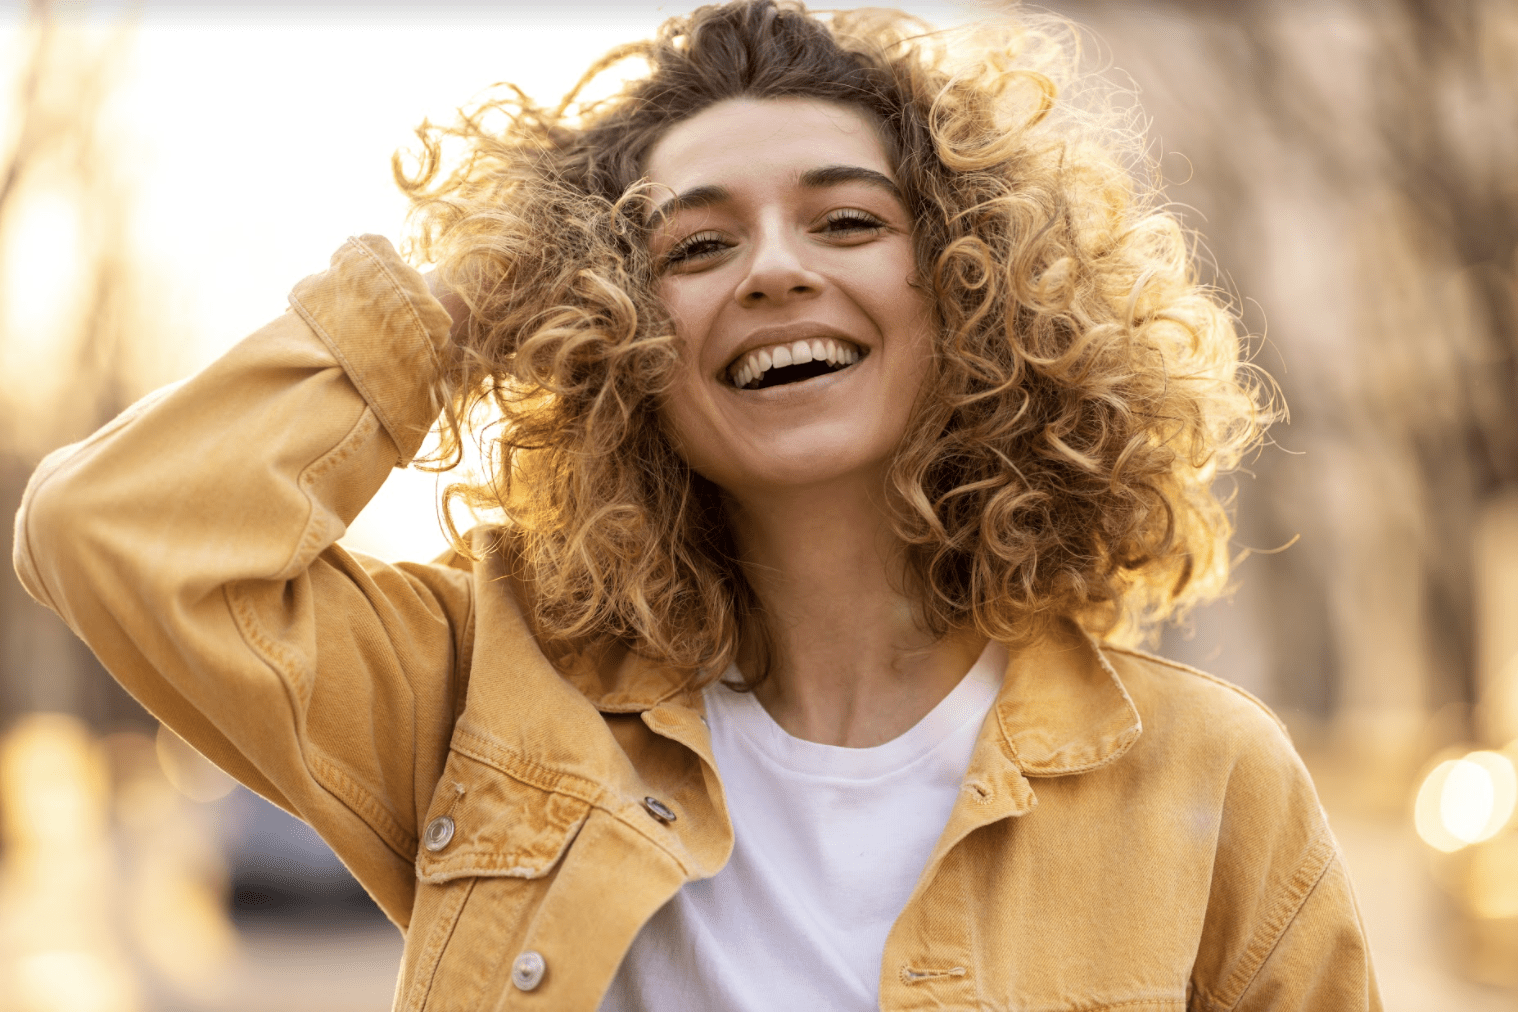 Hair Care: 5 Simple Ways To Bring Your Curly Hair Back To Life